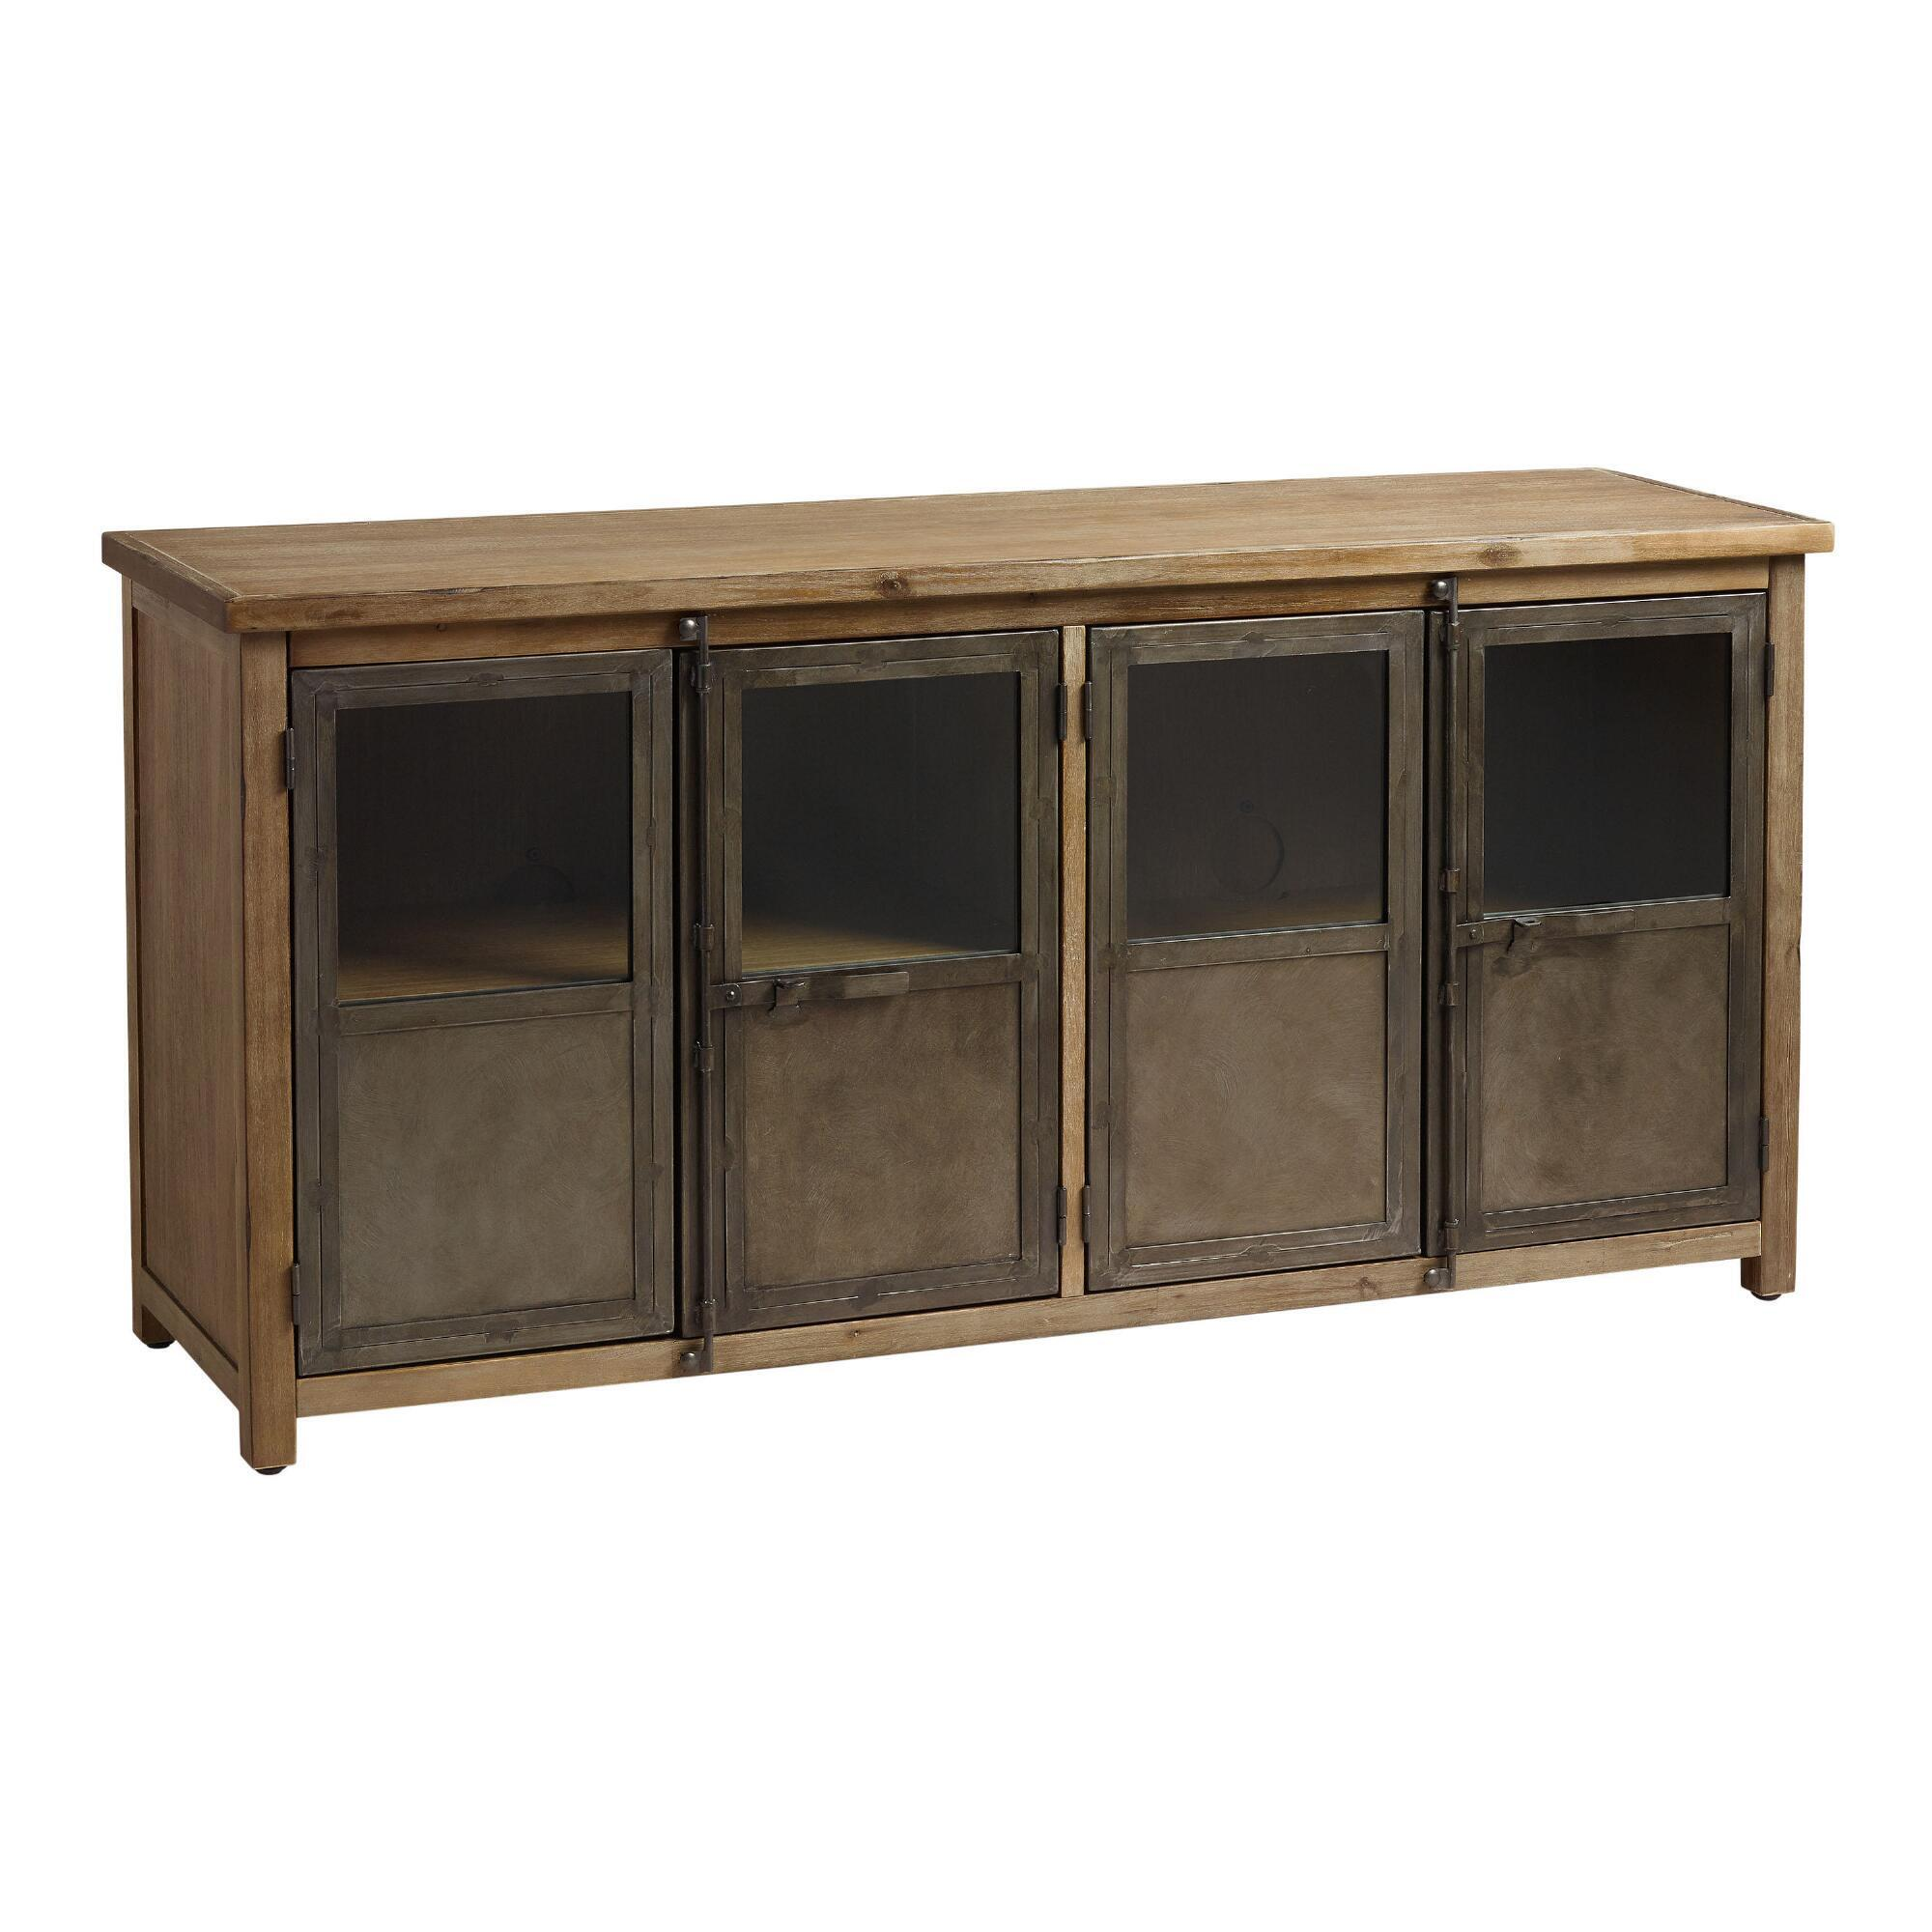 Langley storage cabinet world market - Sofa table with cabinets ...